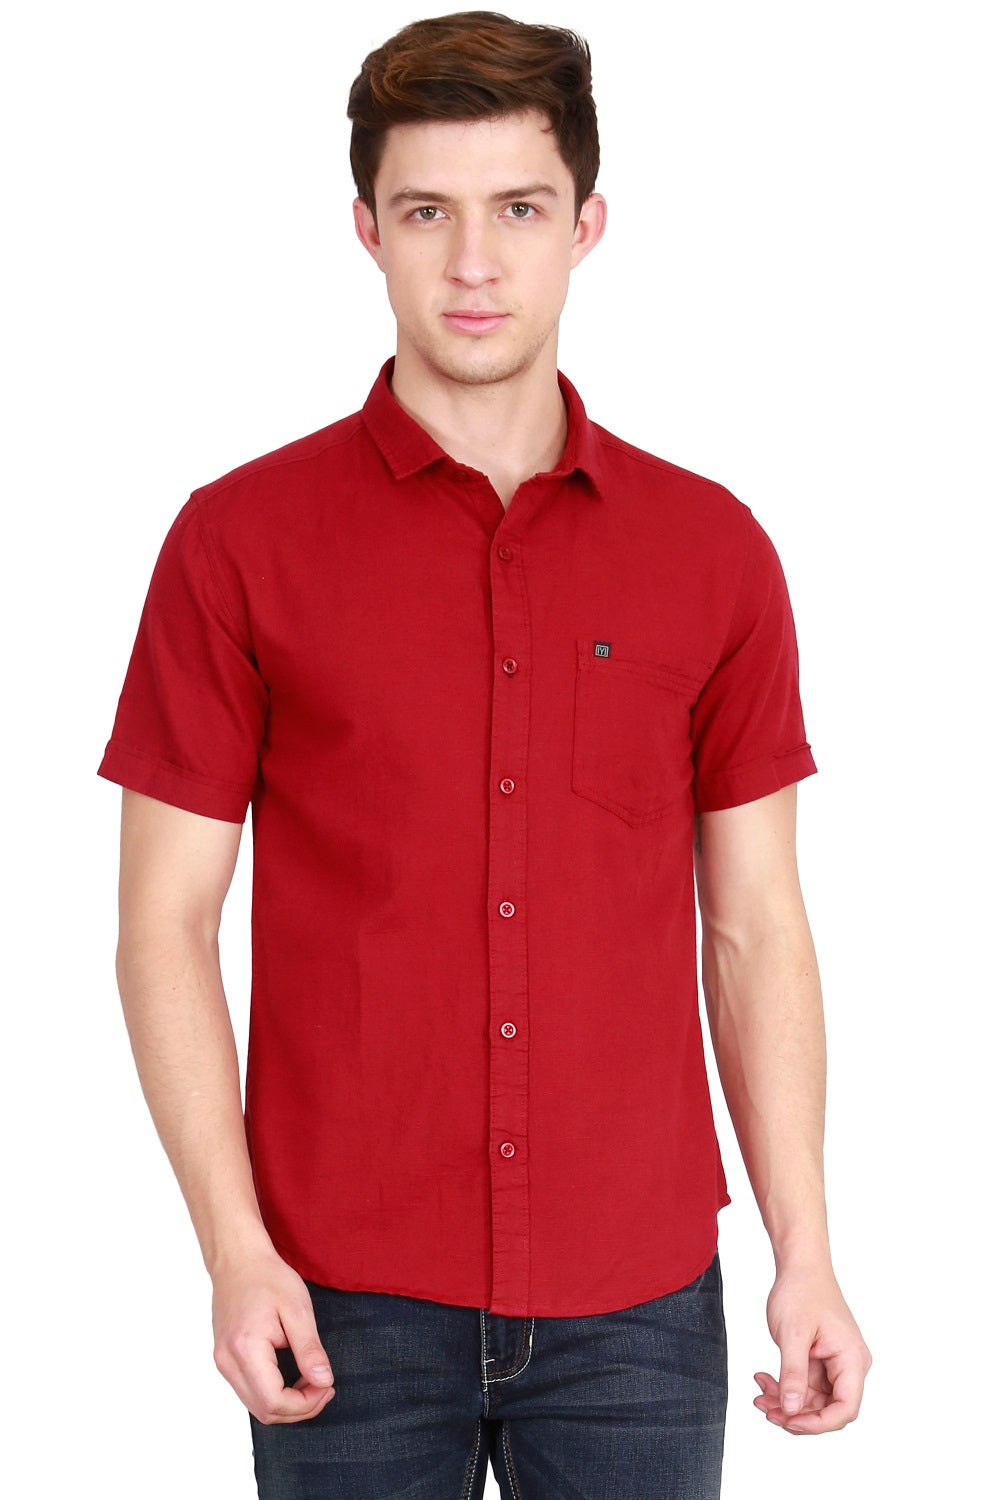 IMYOUNG Men's Solid Maroon Cotton Linen Casual Shirt